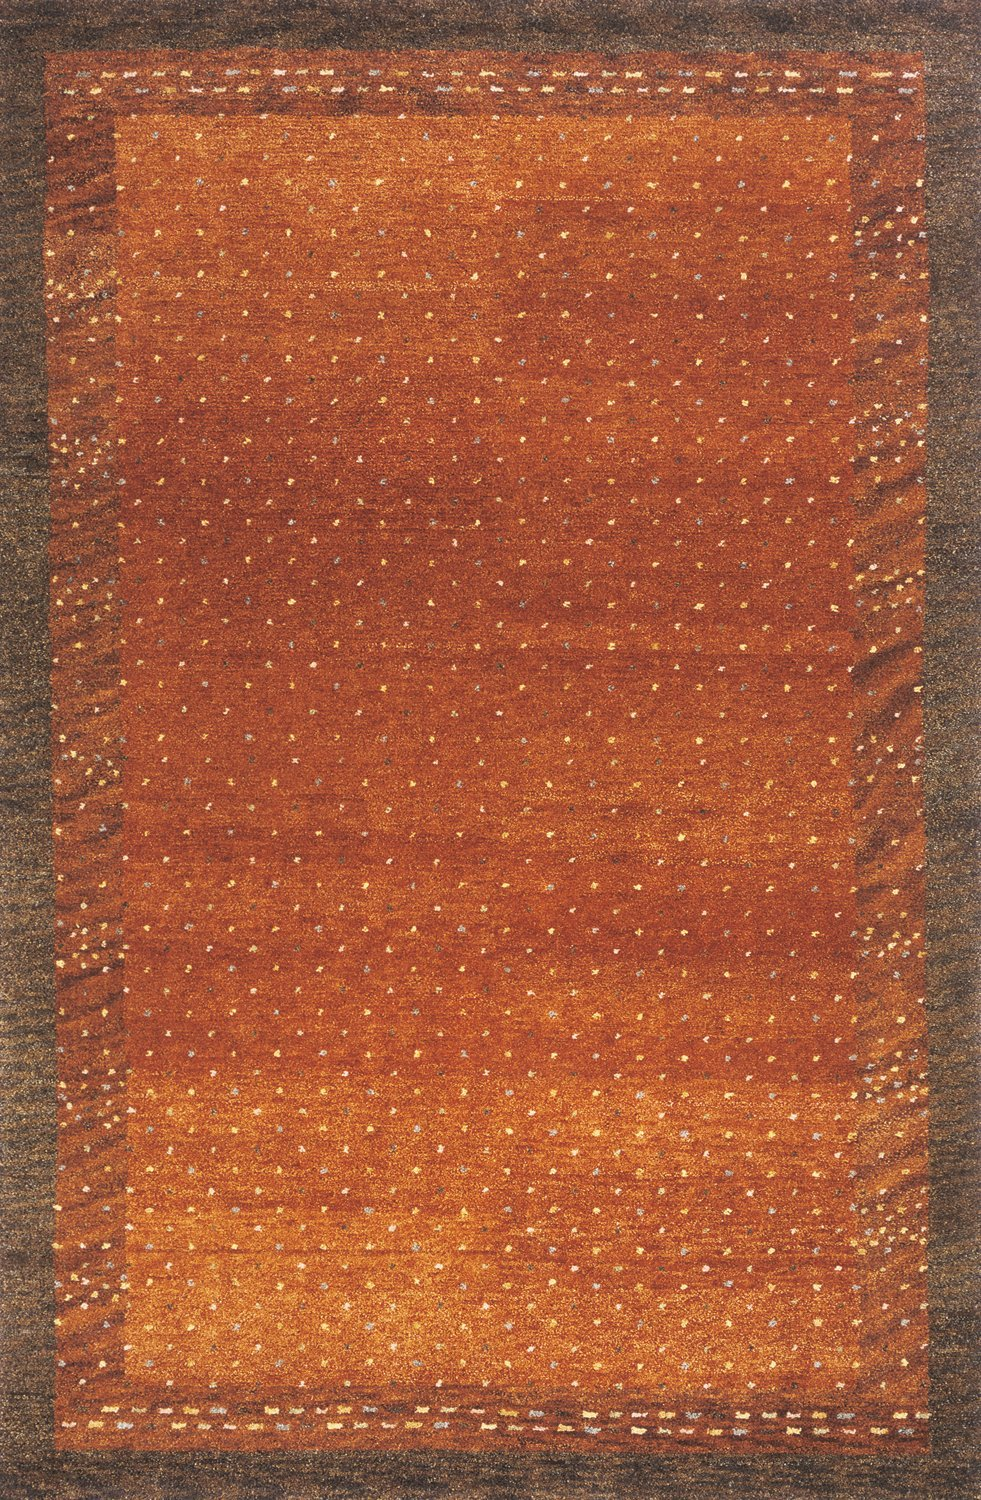 Momeni Rugs DEGABDG-01BRN2030 Desert Gabbeh Collection, 100% Wool Hand Knotted Contemporary Area Rug, 2' x 3', Brown 2' x 3' Inc.